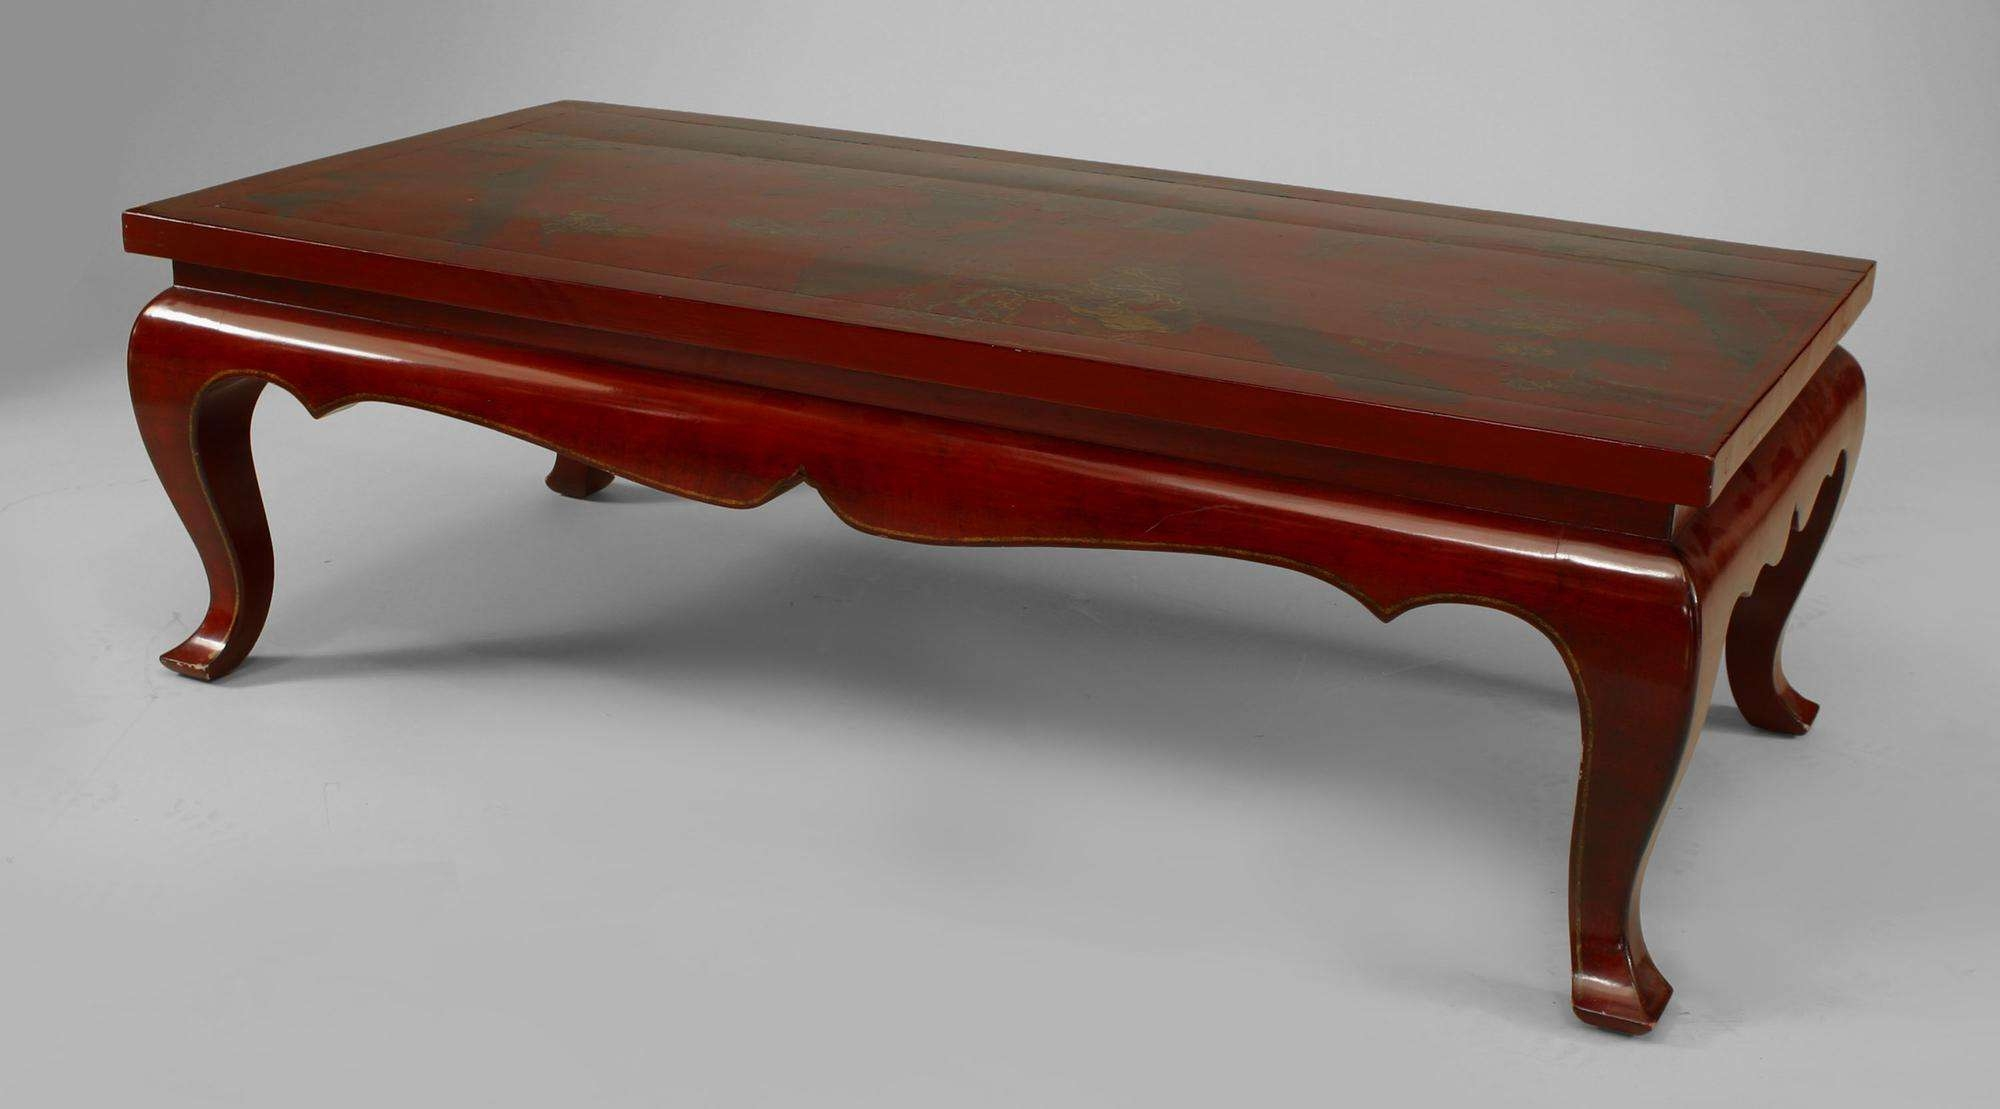 Most Recent Asian Coffee Tables Inside Stunning Chinese Style Coffee Table On Latest Home Interior Design (View 14 of 20)